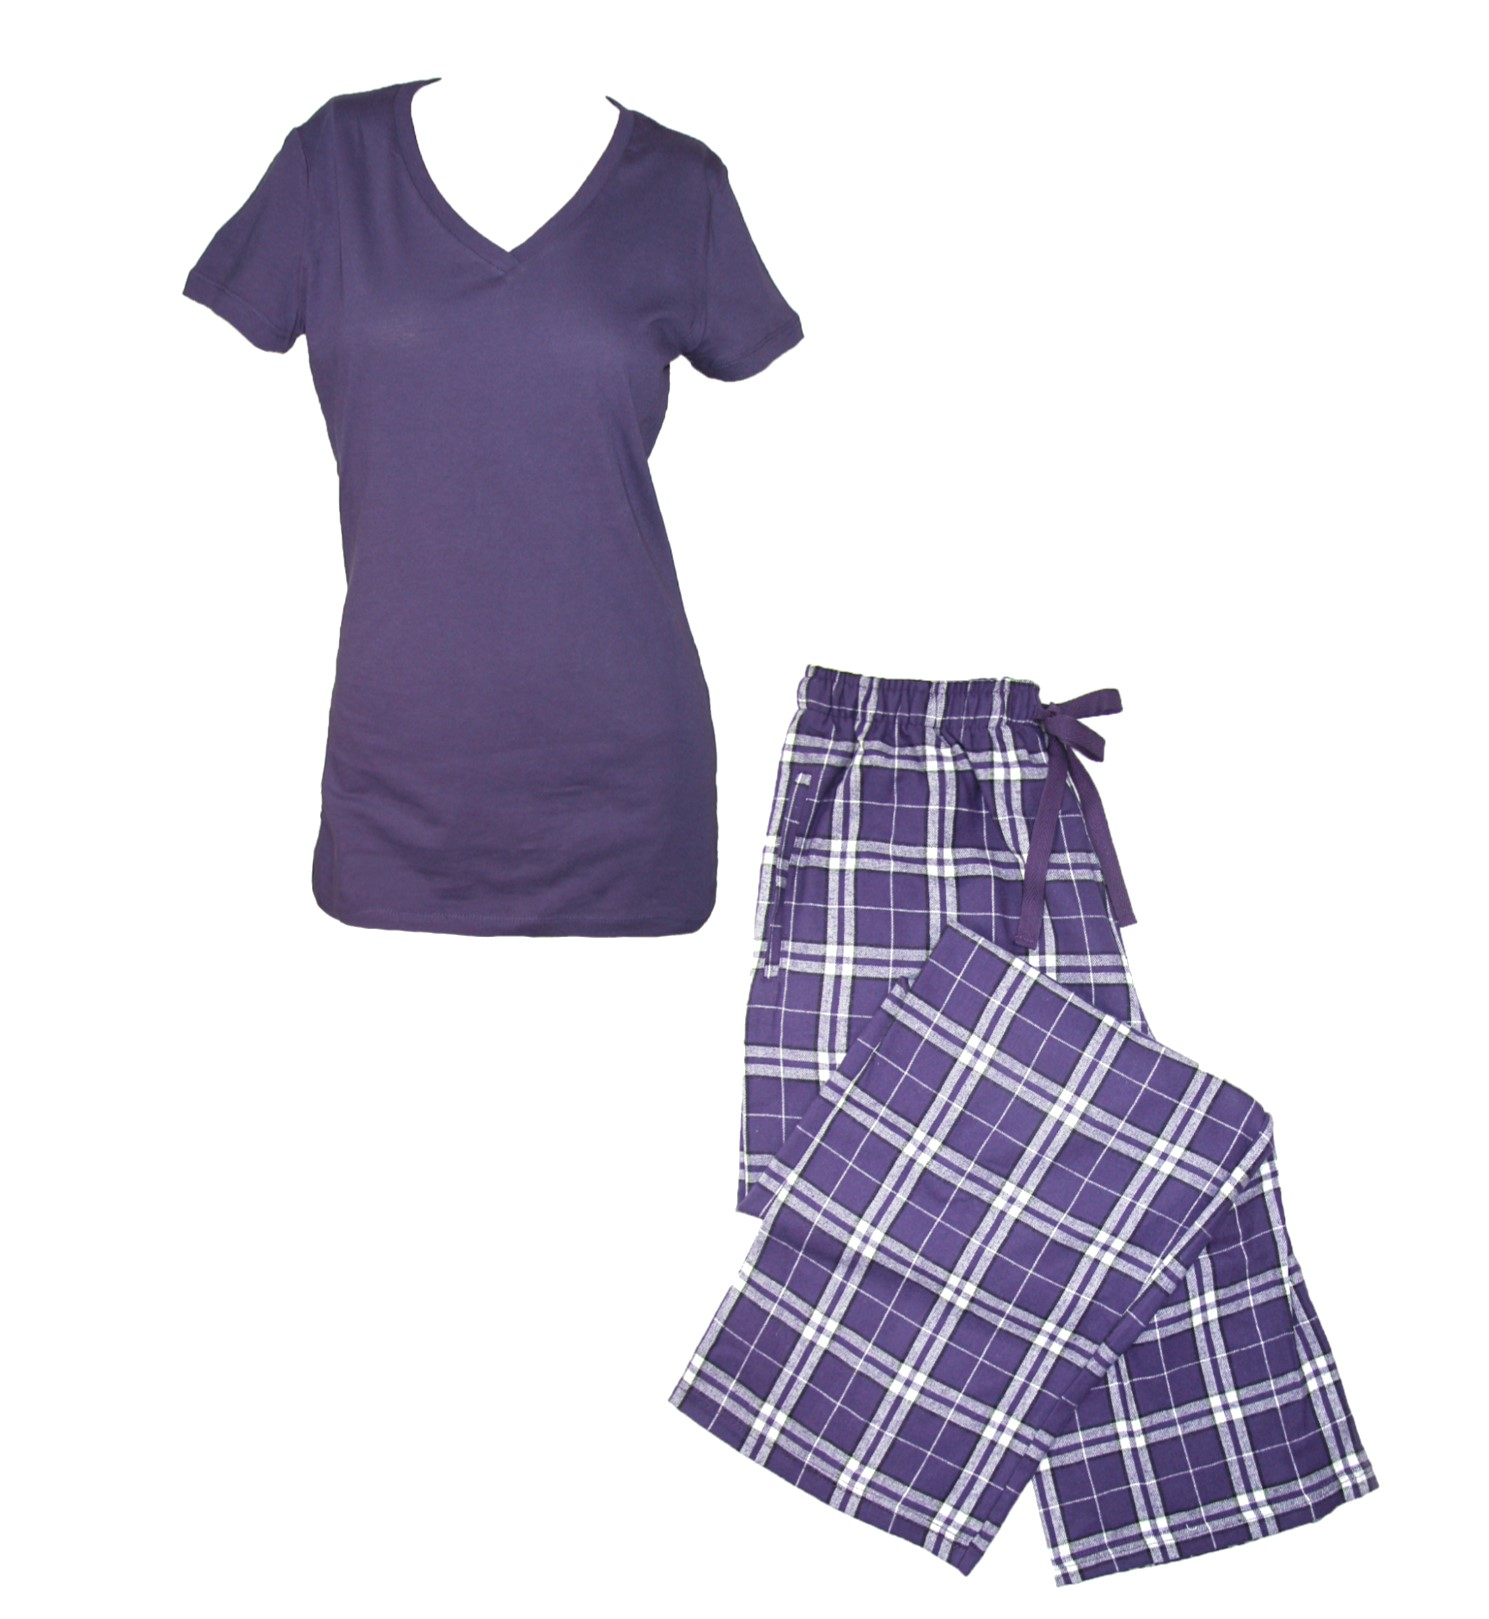 Boxercraft Size Large Womens Flannel Pants with Pockets and Short Sleeve Tee Set, Purple